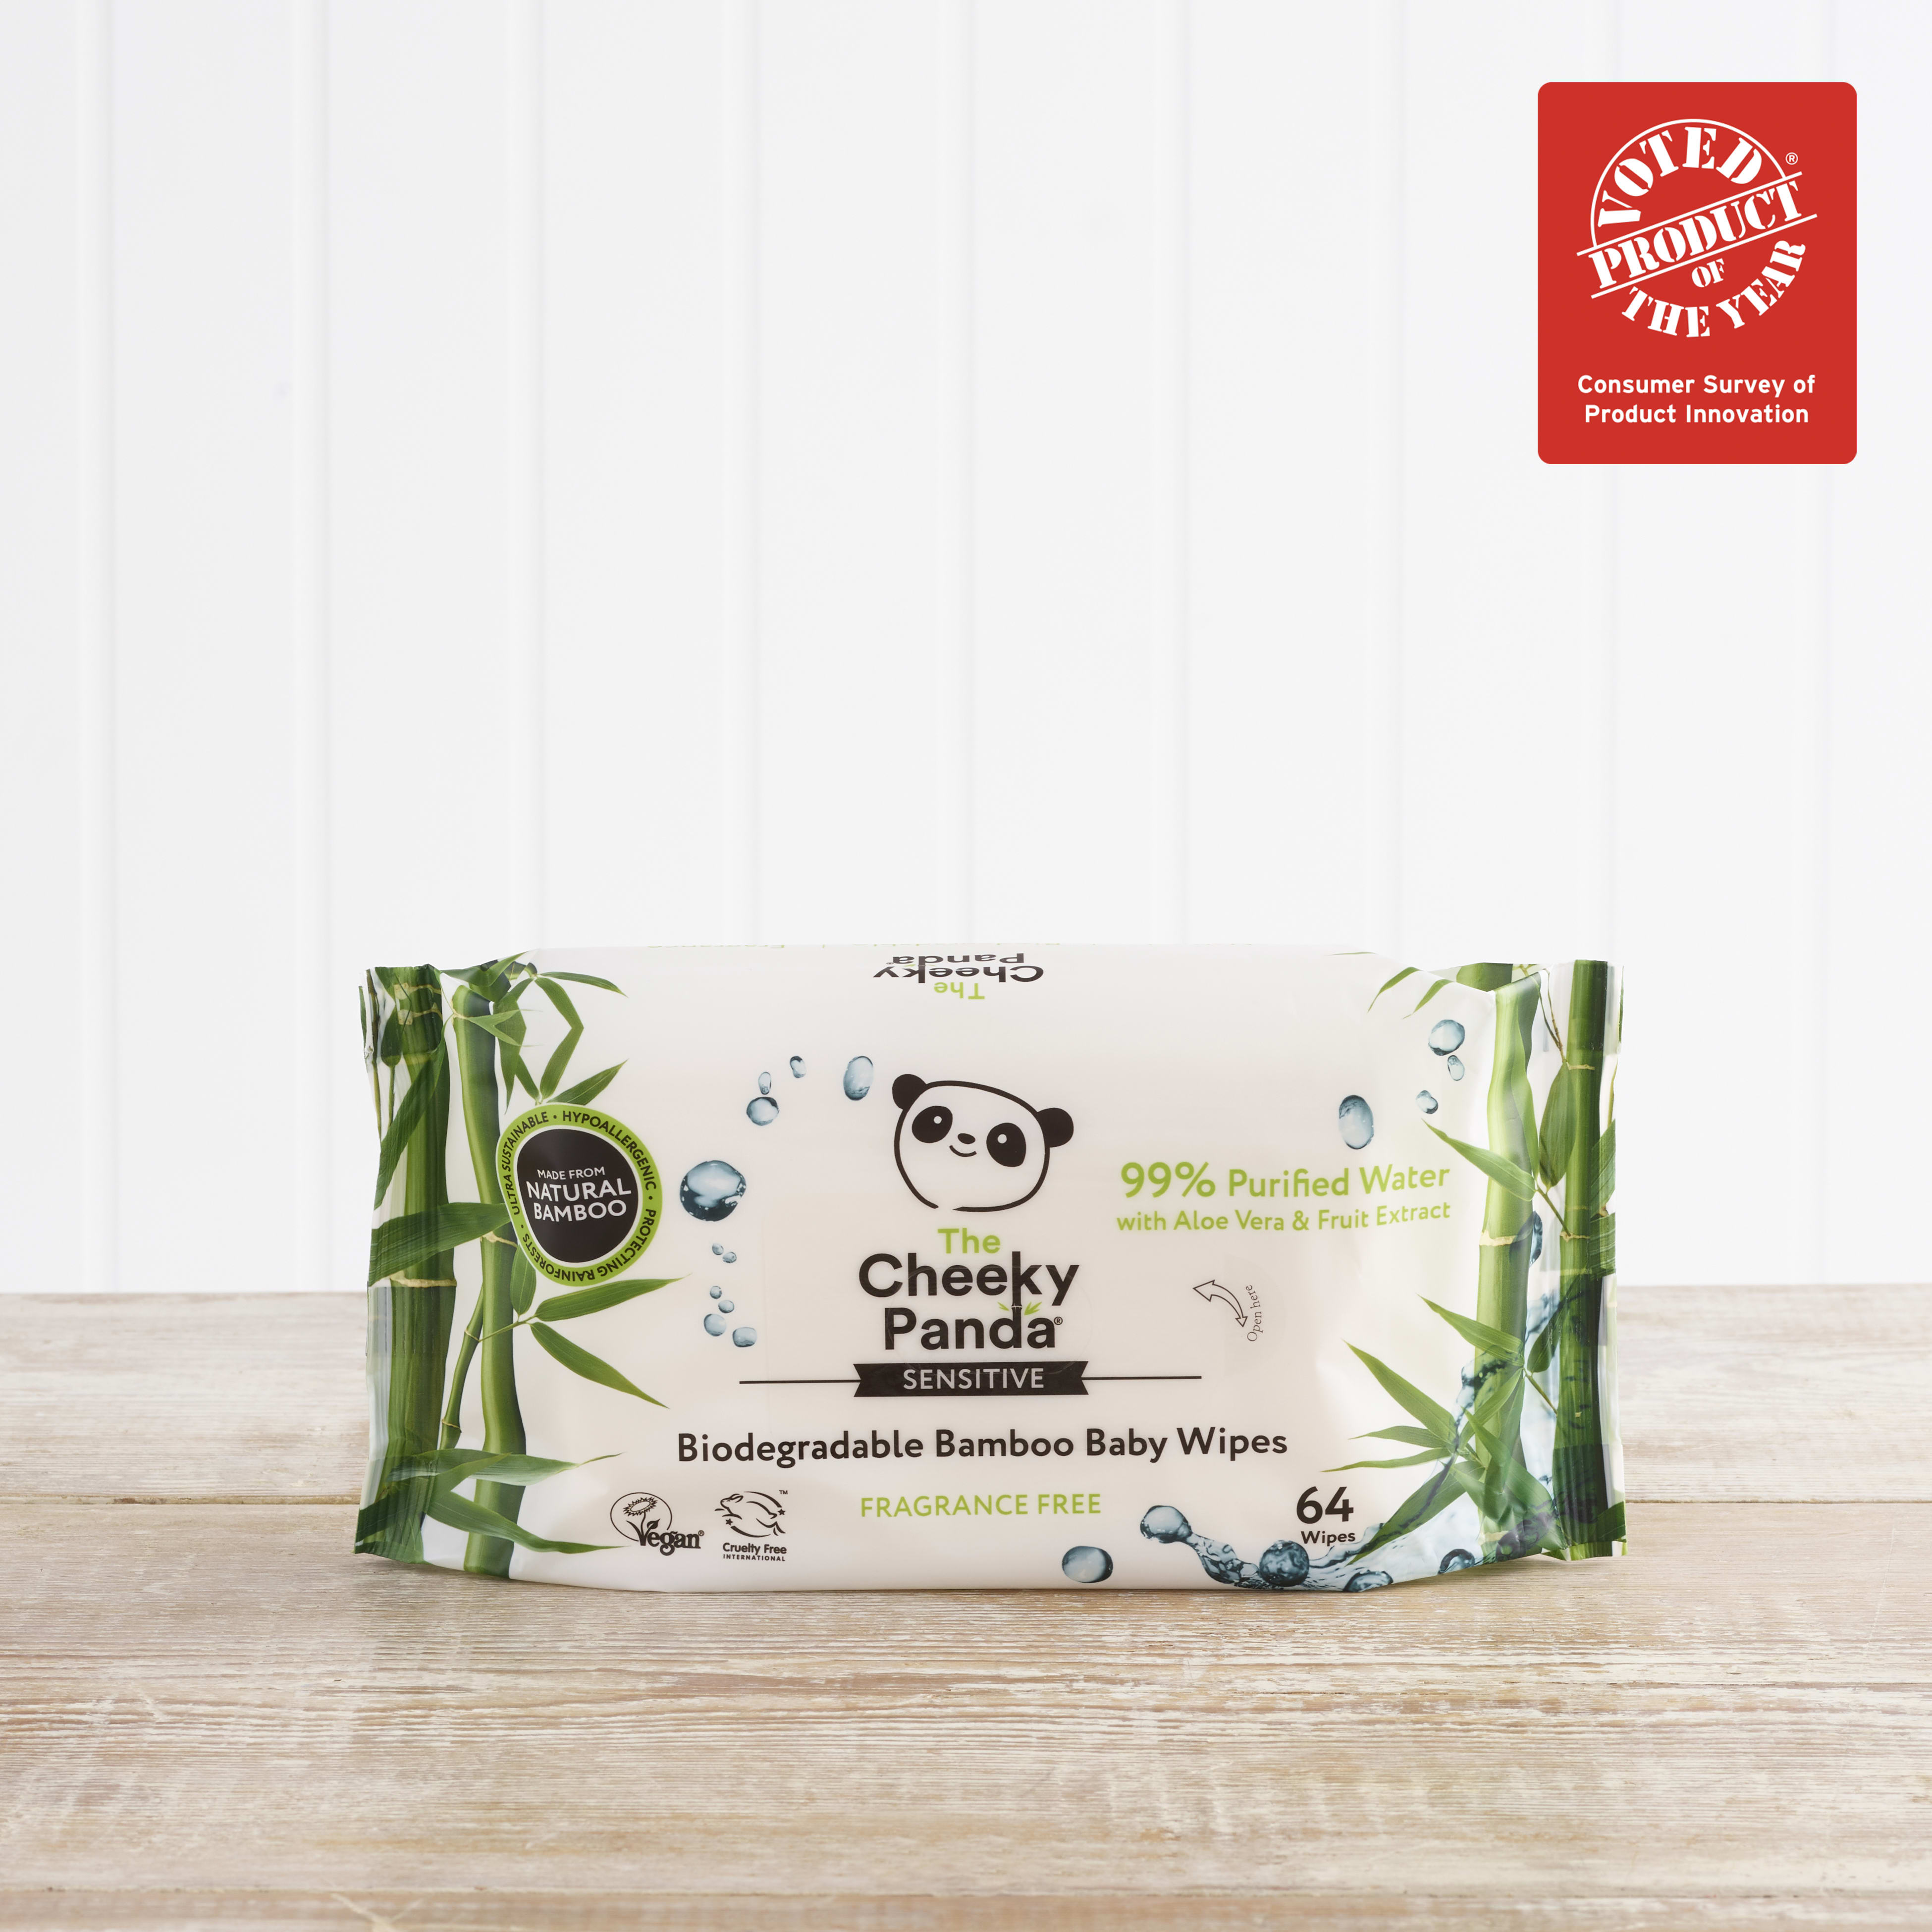 The Cheeky Panda Biodegradable Bamboo Baby Wipes, 64 wipes